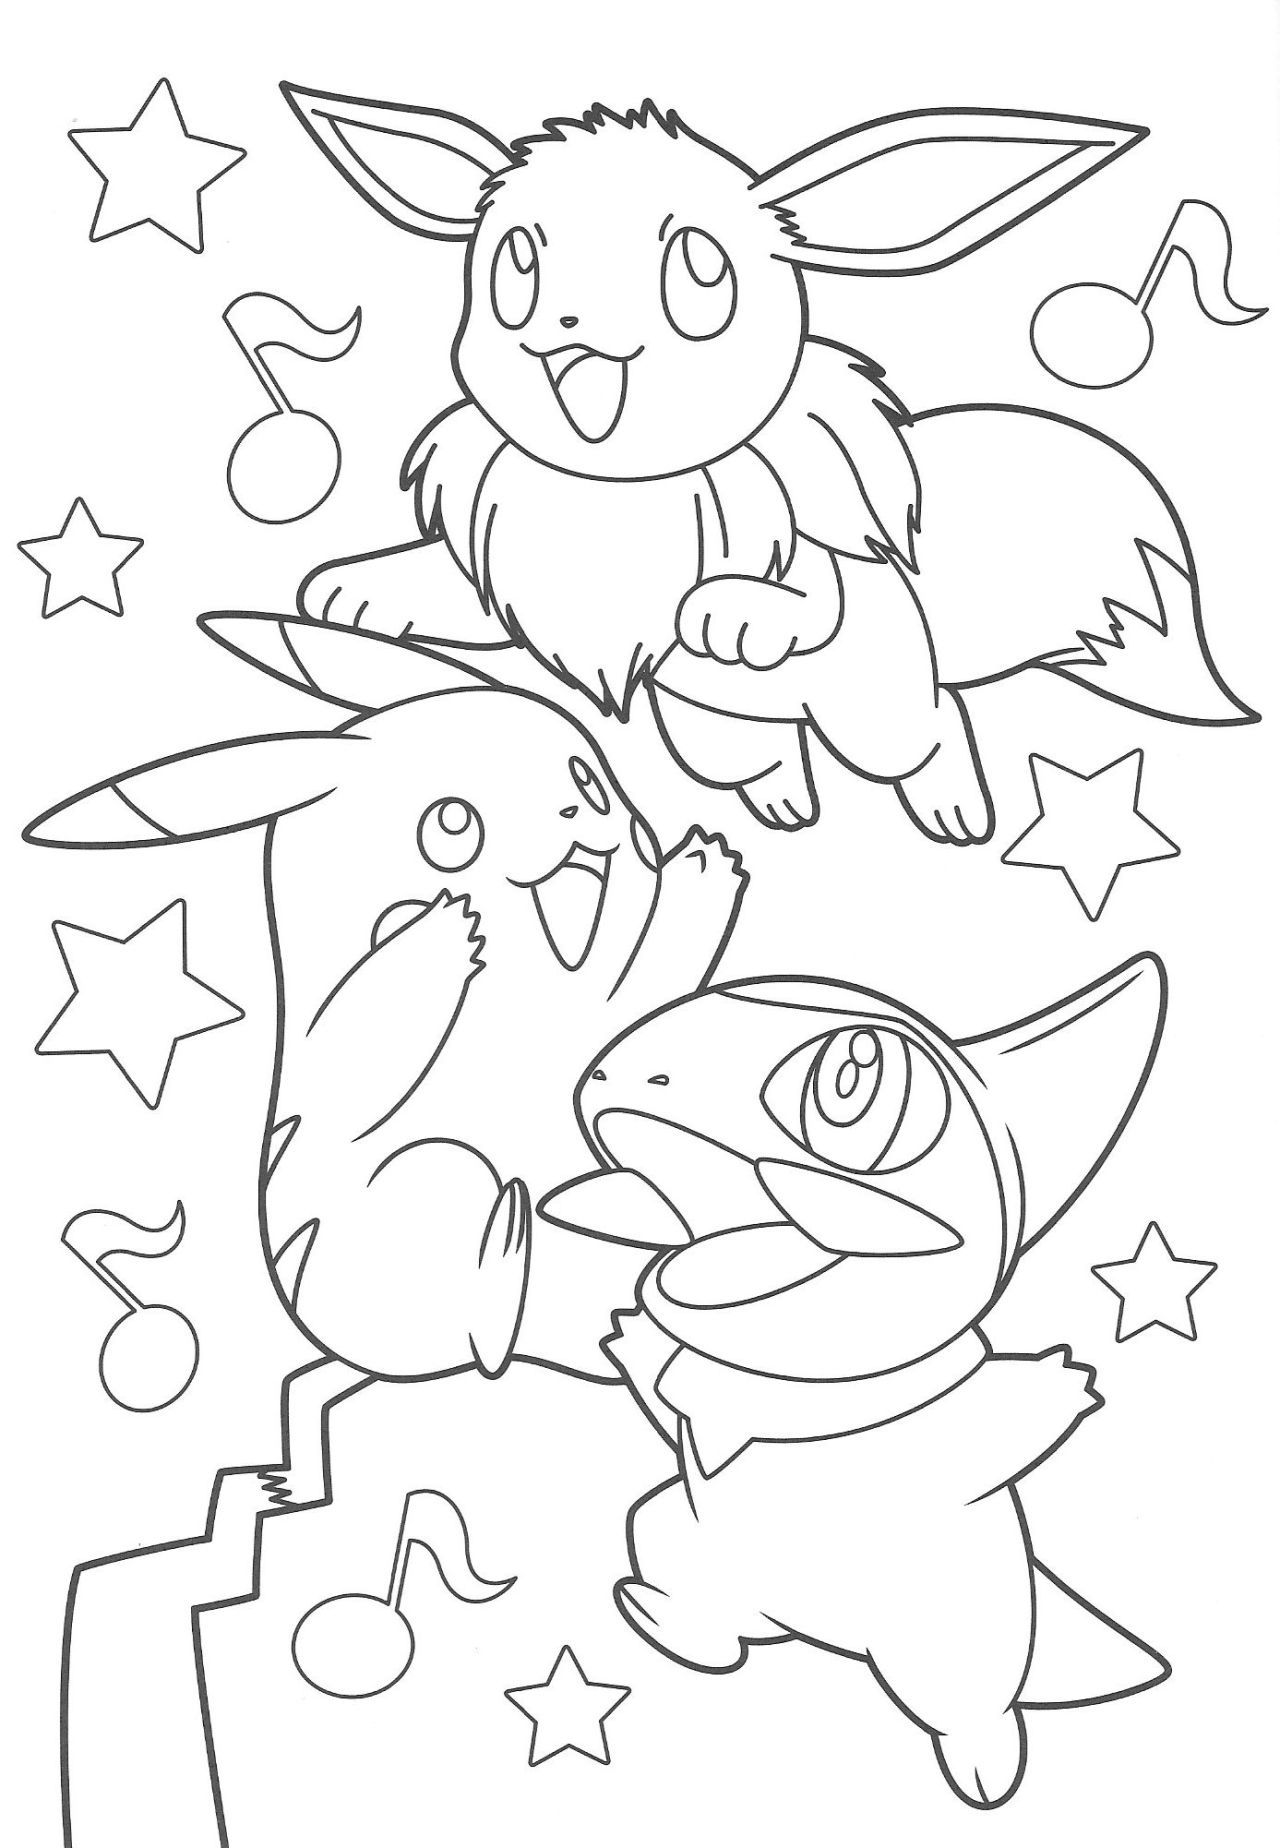 Pikachu And Eevee Friends Coloring Book Pokemon Coloring Pages Pokemon Coloring Coloring Pages